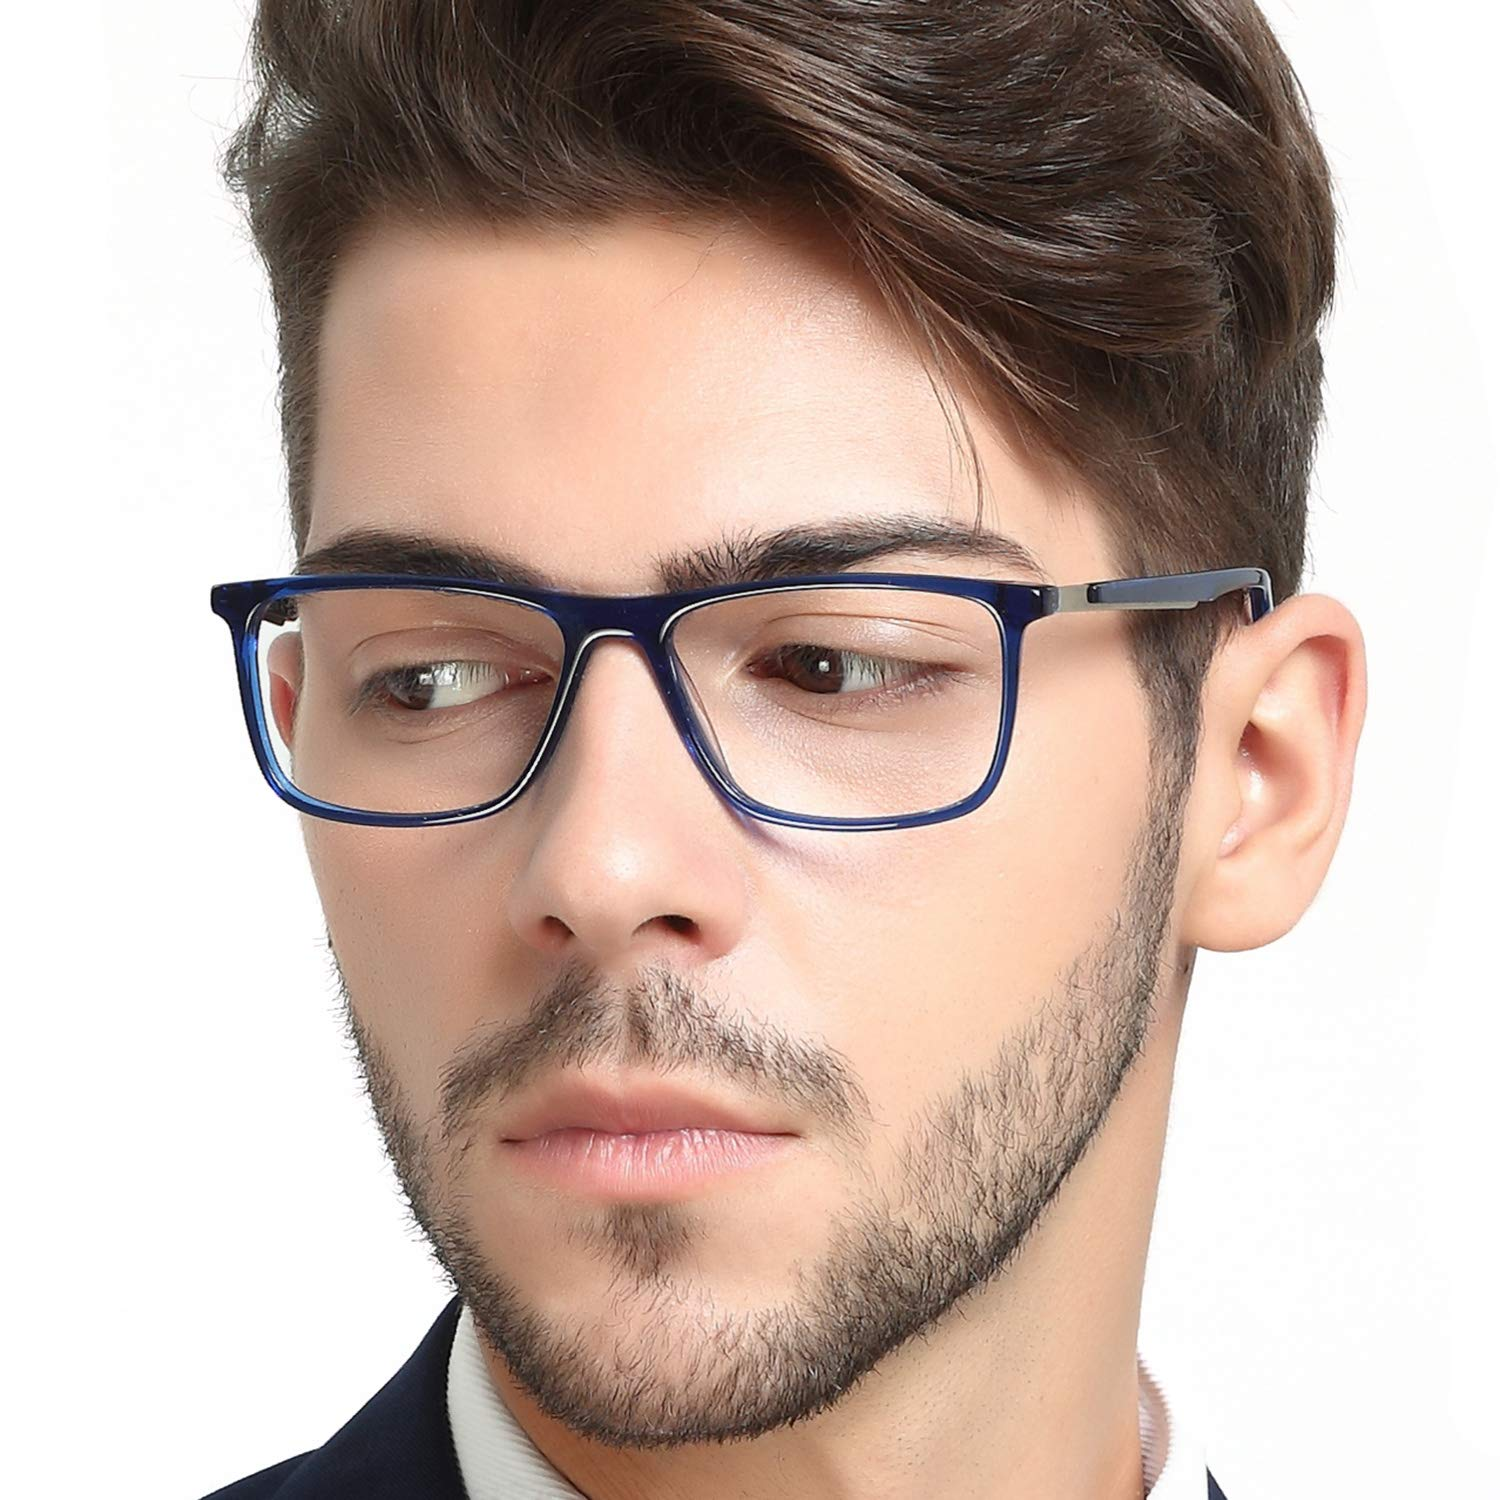 OCCI CHIARI Optical Eyewear Non-prescription Fashion Glasses Eyeglasses Frame with Clear Lenses For Men Blue Light Blocking ATENE-C1